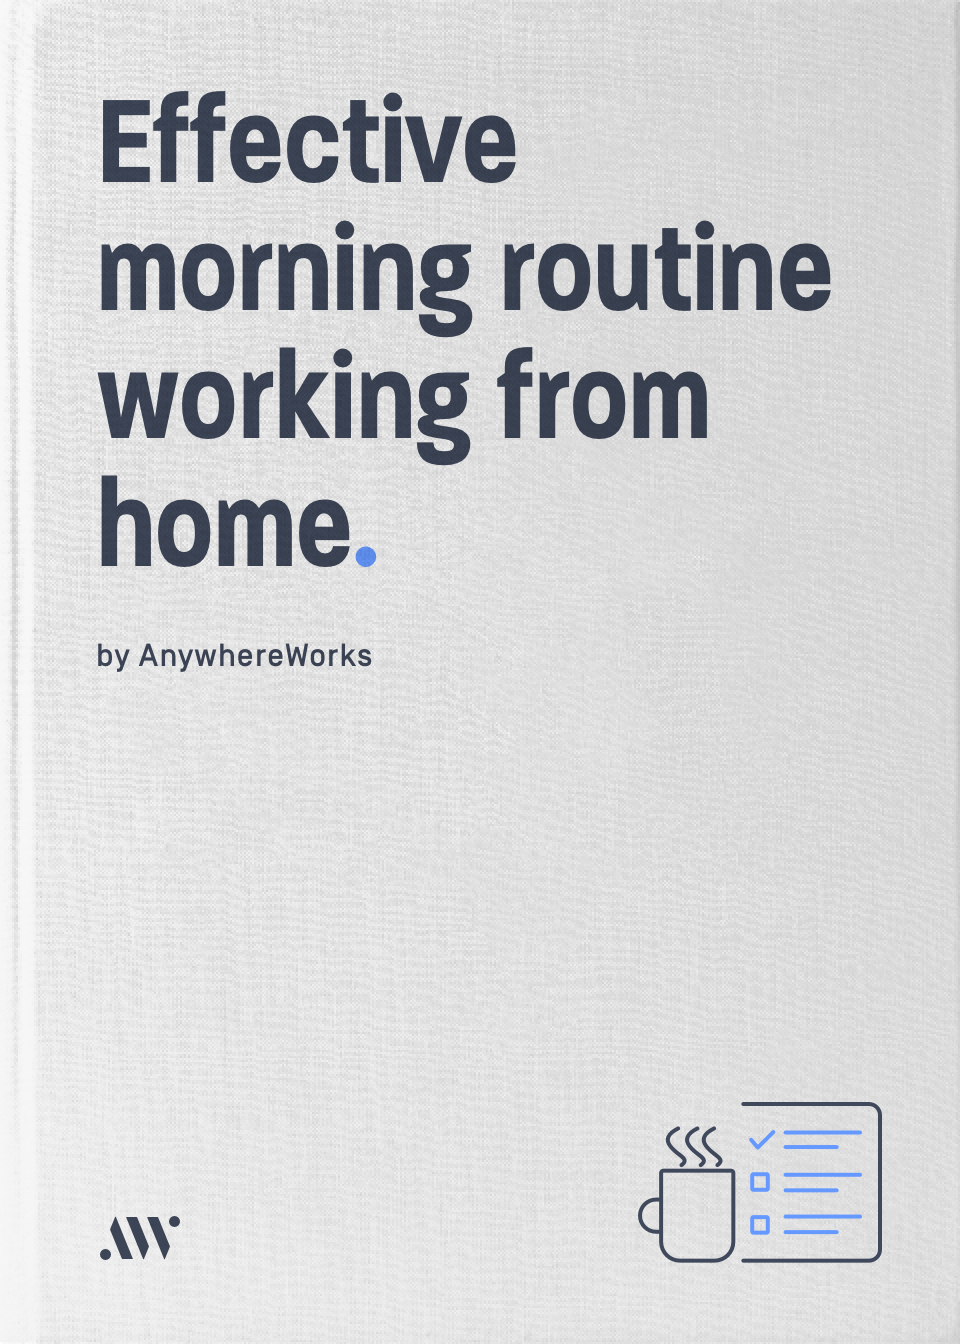 How to create an effective morning routine working from home